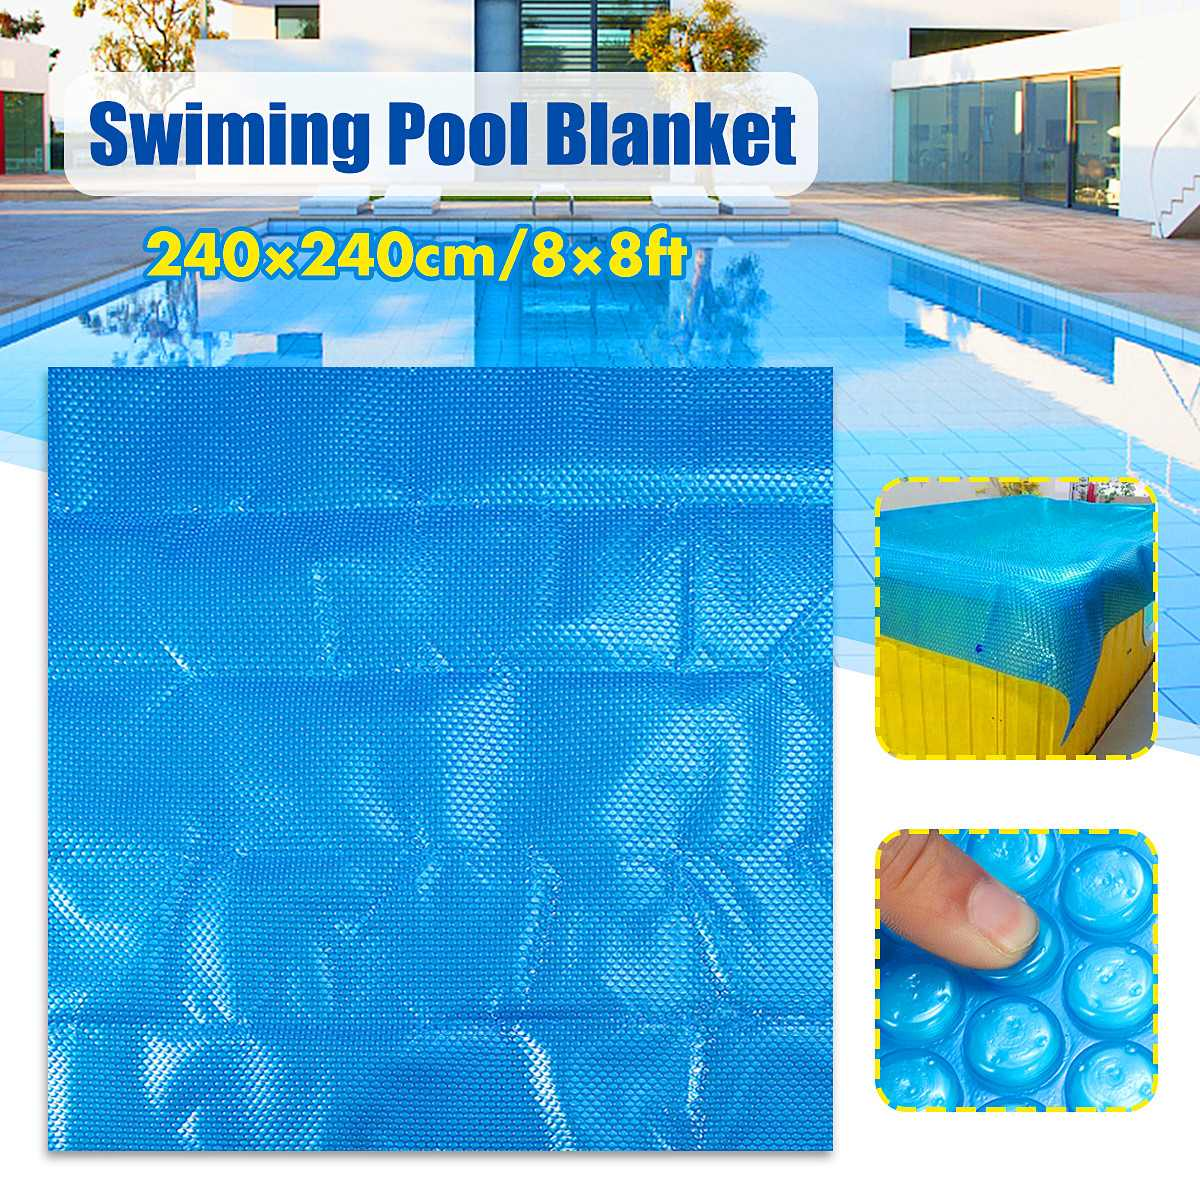 US $46.67 8% OFF|240*240cm Square Solar Swimming Cover Hot Tub Outdoor  Garden Pool Blanket Protector Dustproof Cloth Mat Cover Accessories-in Pool  & ...